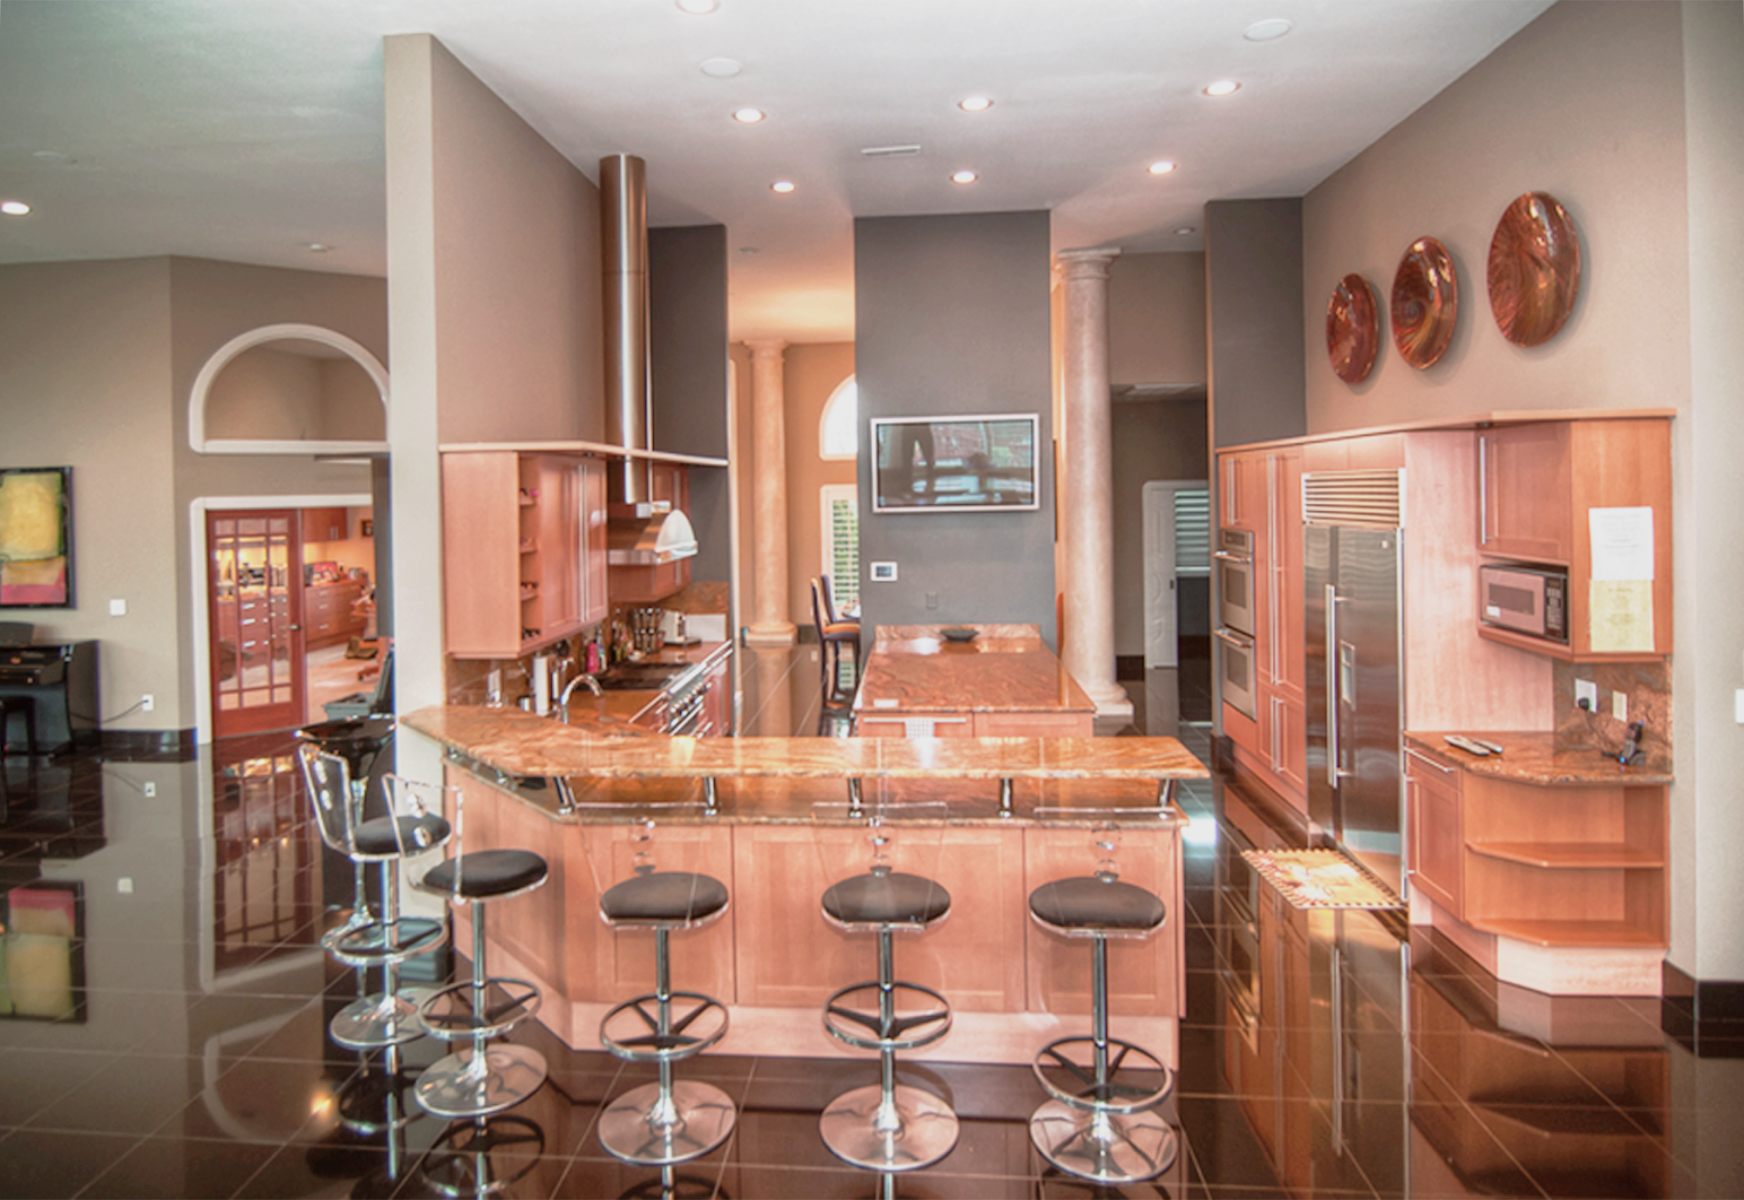 Modern paint colors warm any space.